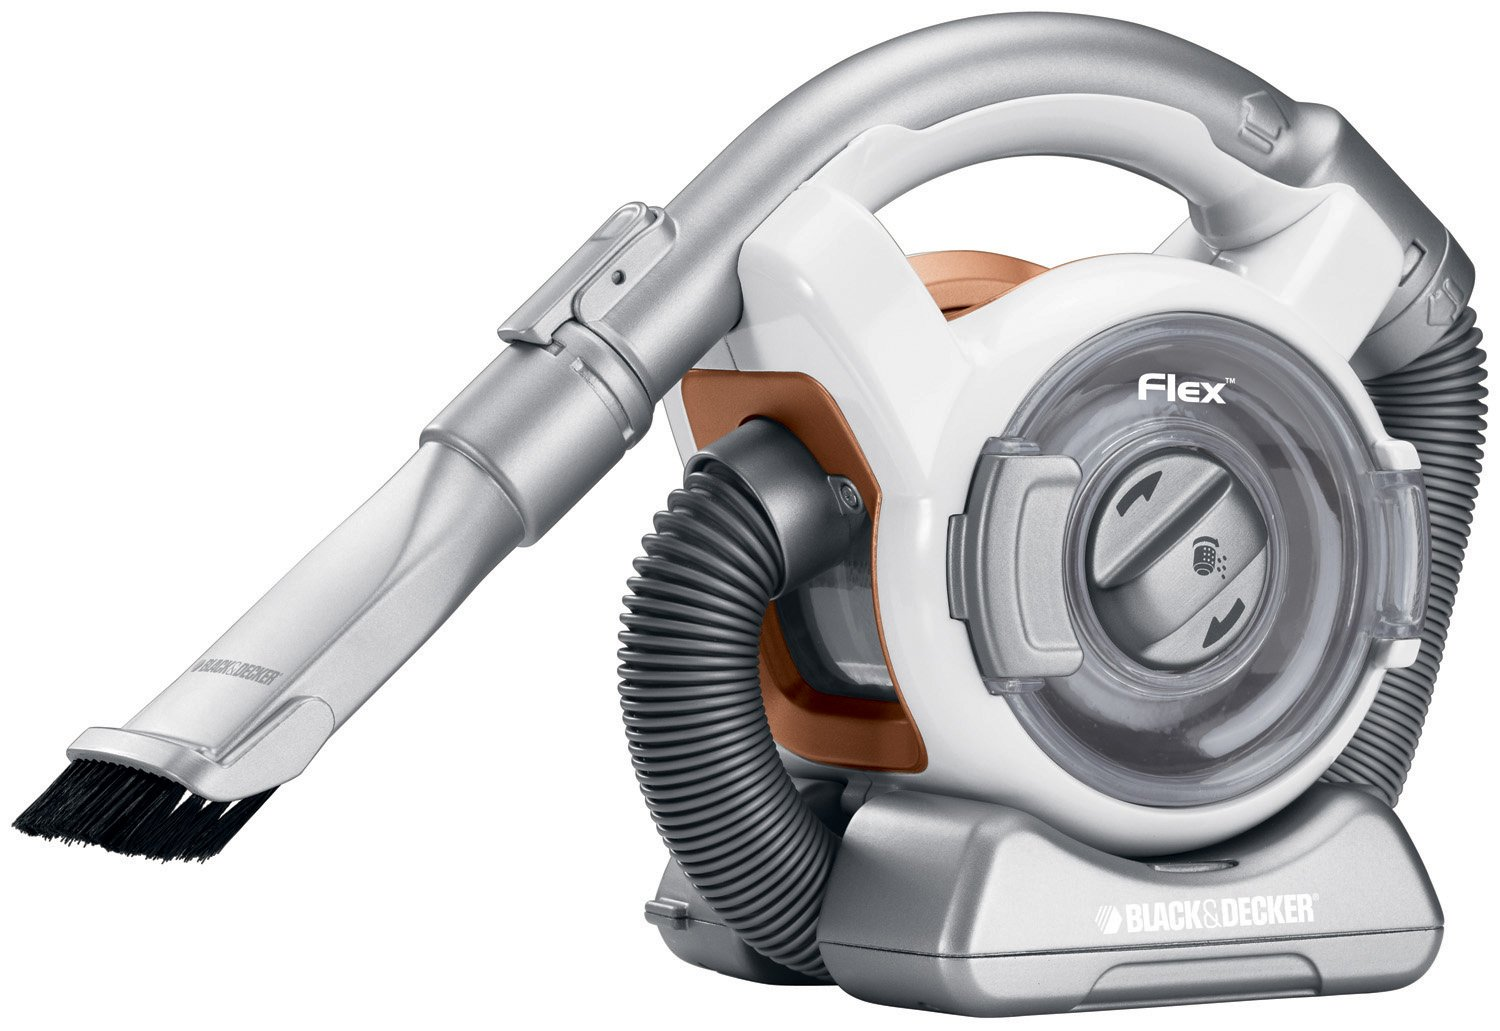 black decker cordless flex mini canister vac vacuum fhv1200 ebay. Black Bedroom Furniture Sets. Home Design Ideas